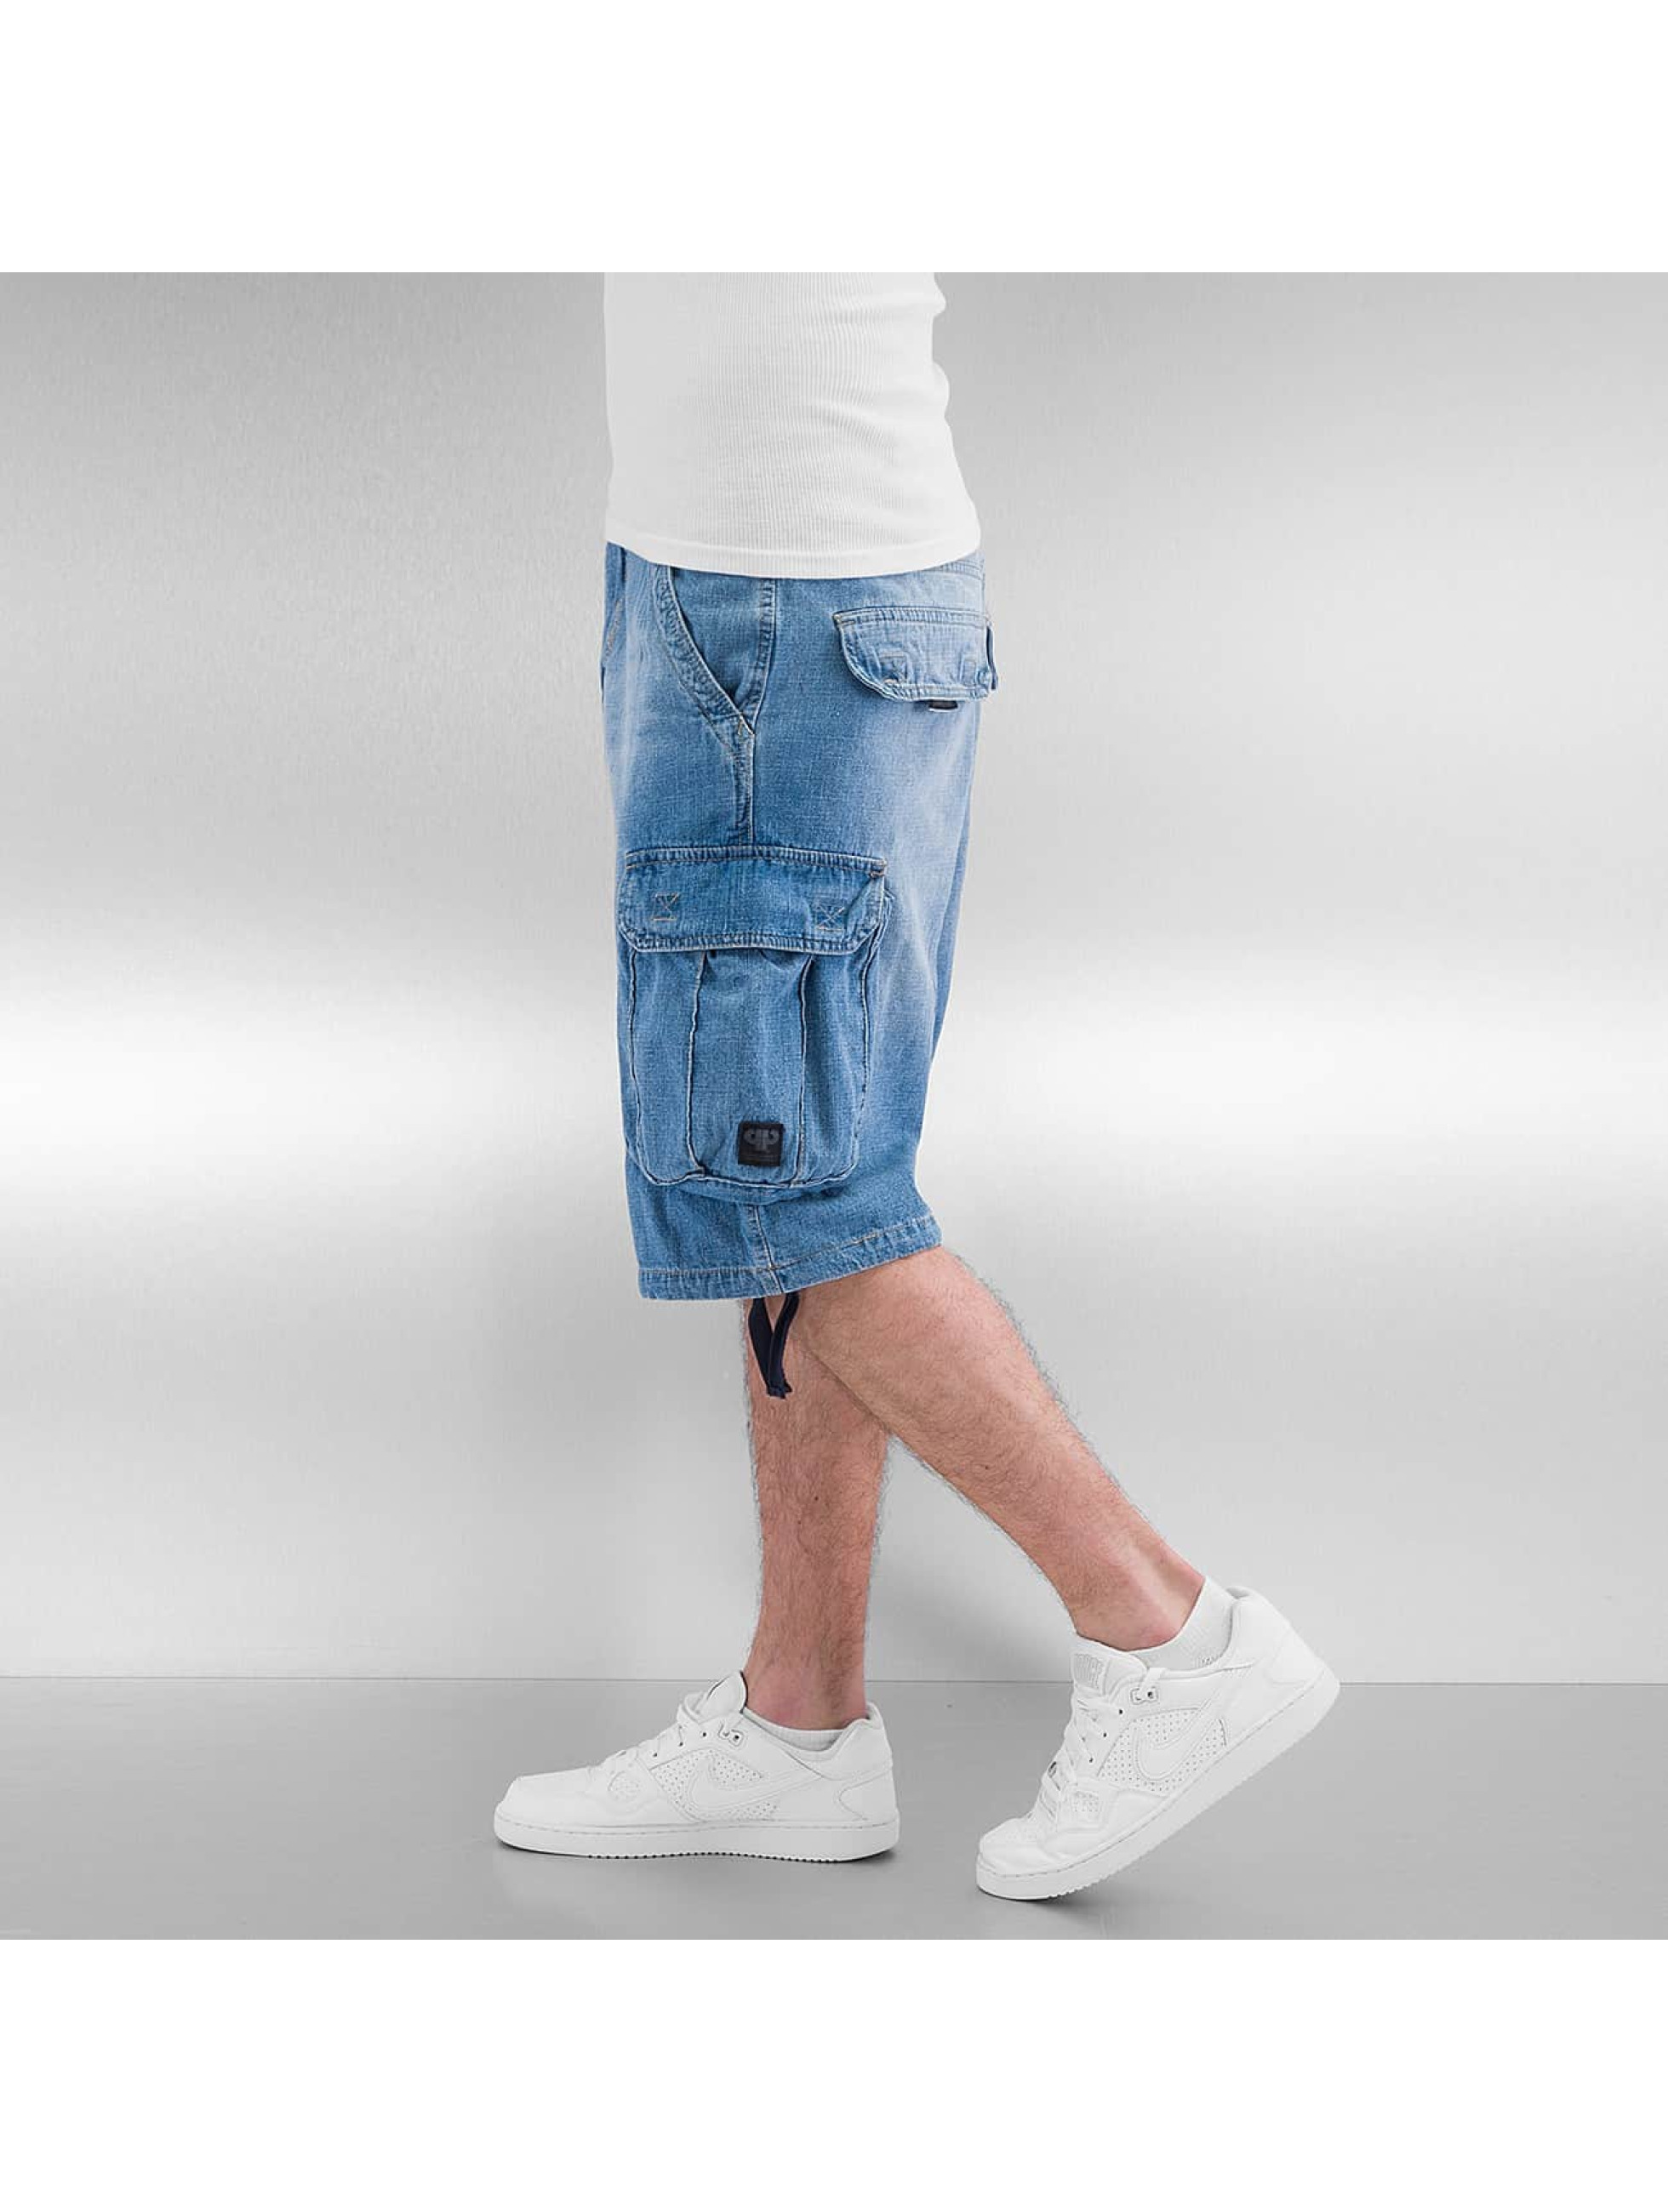 Pelle Pelle Shorts Denim blau